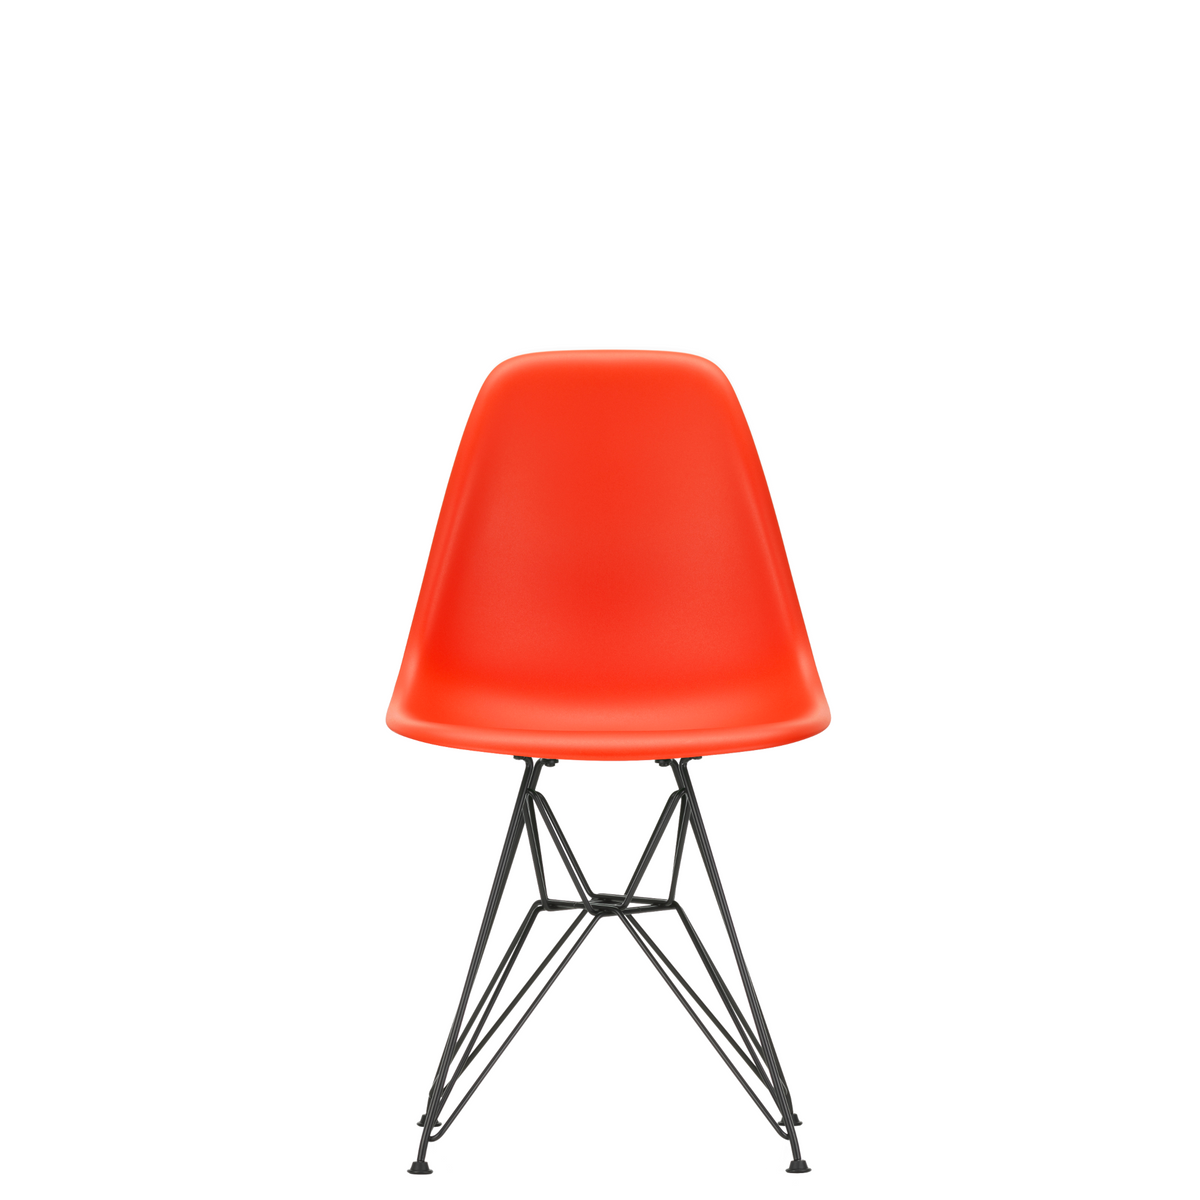 Vitra Eames Plastic Side Chair DSR Powder Coated for Outdoor Use Poppy Red Shell Black Powdercoated Base